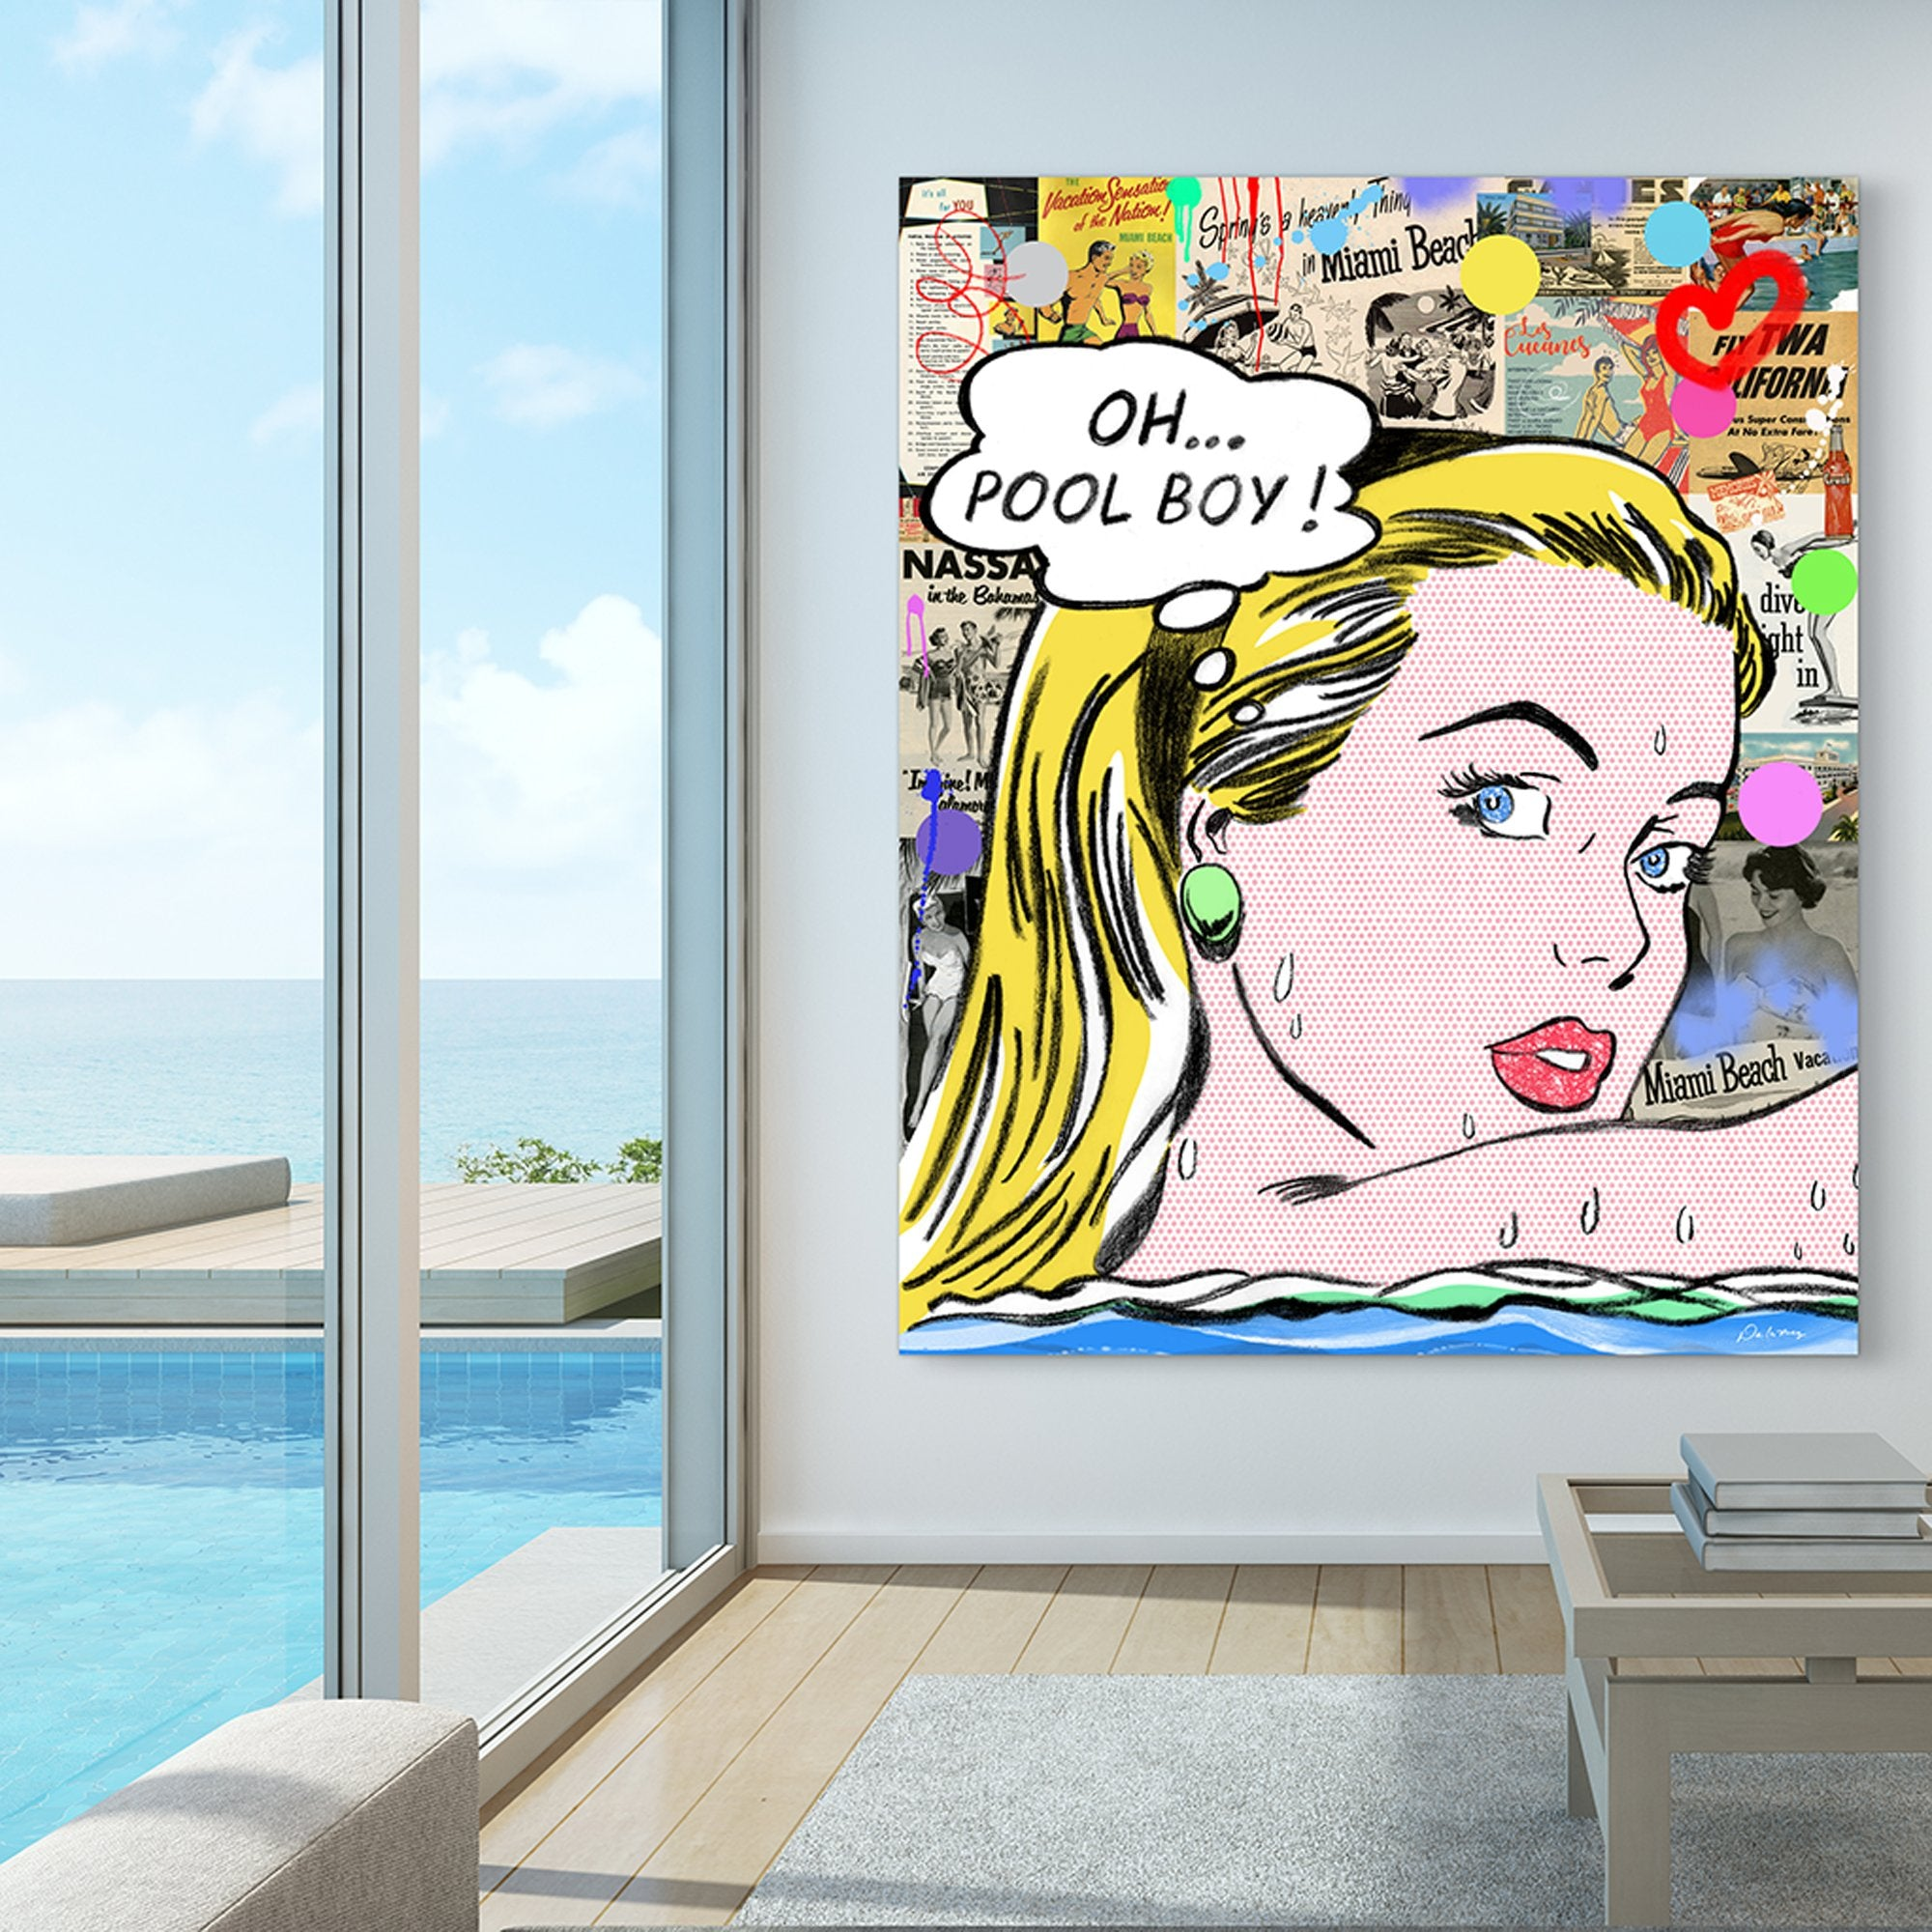 nelson de la nuez king of pop art pool boy high maintenance palm springs beach miami material girl